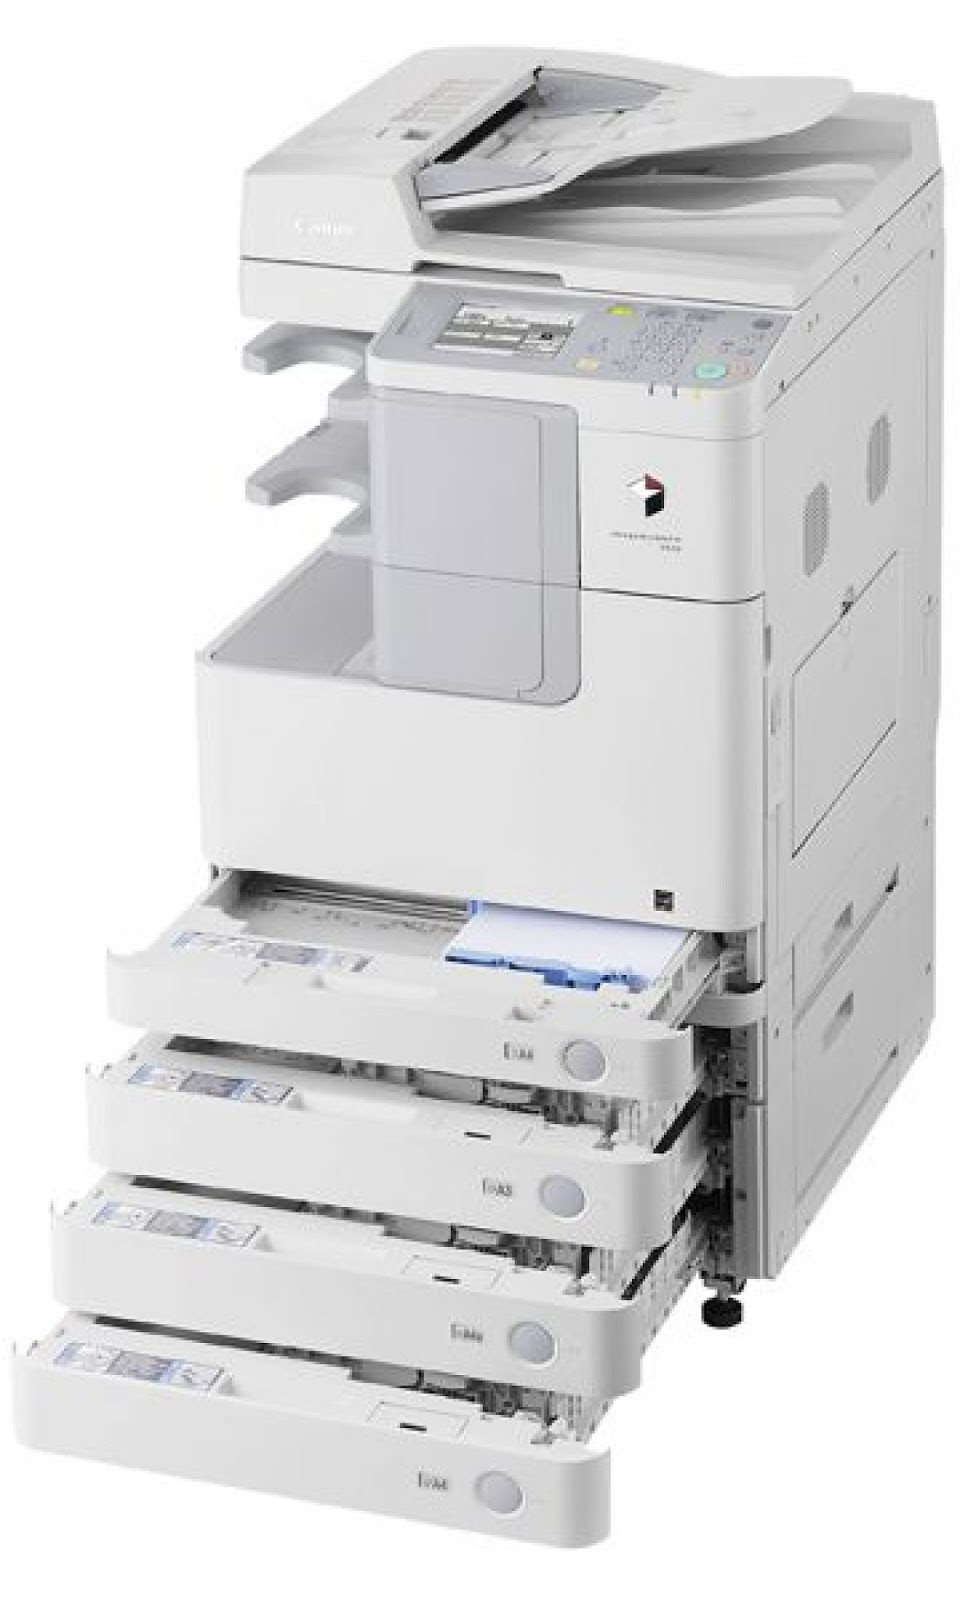 Canon Ir 2420 Driver Free Download For Windows 7 64 Bit ...